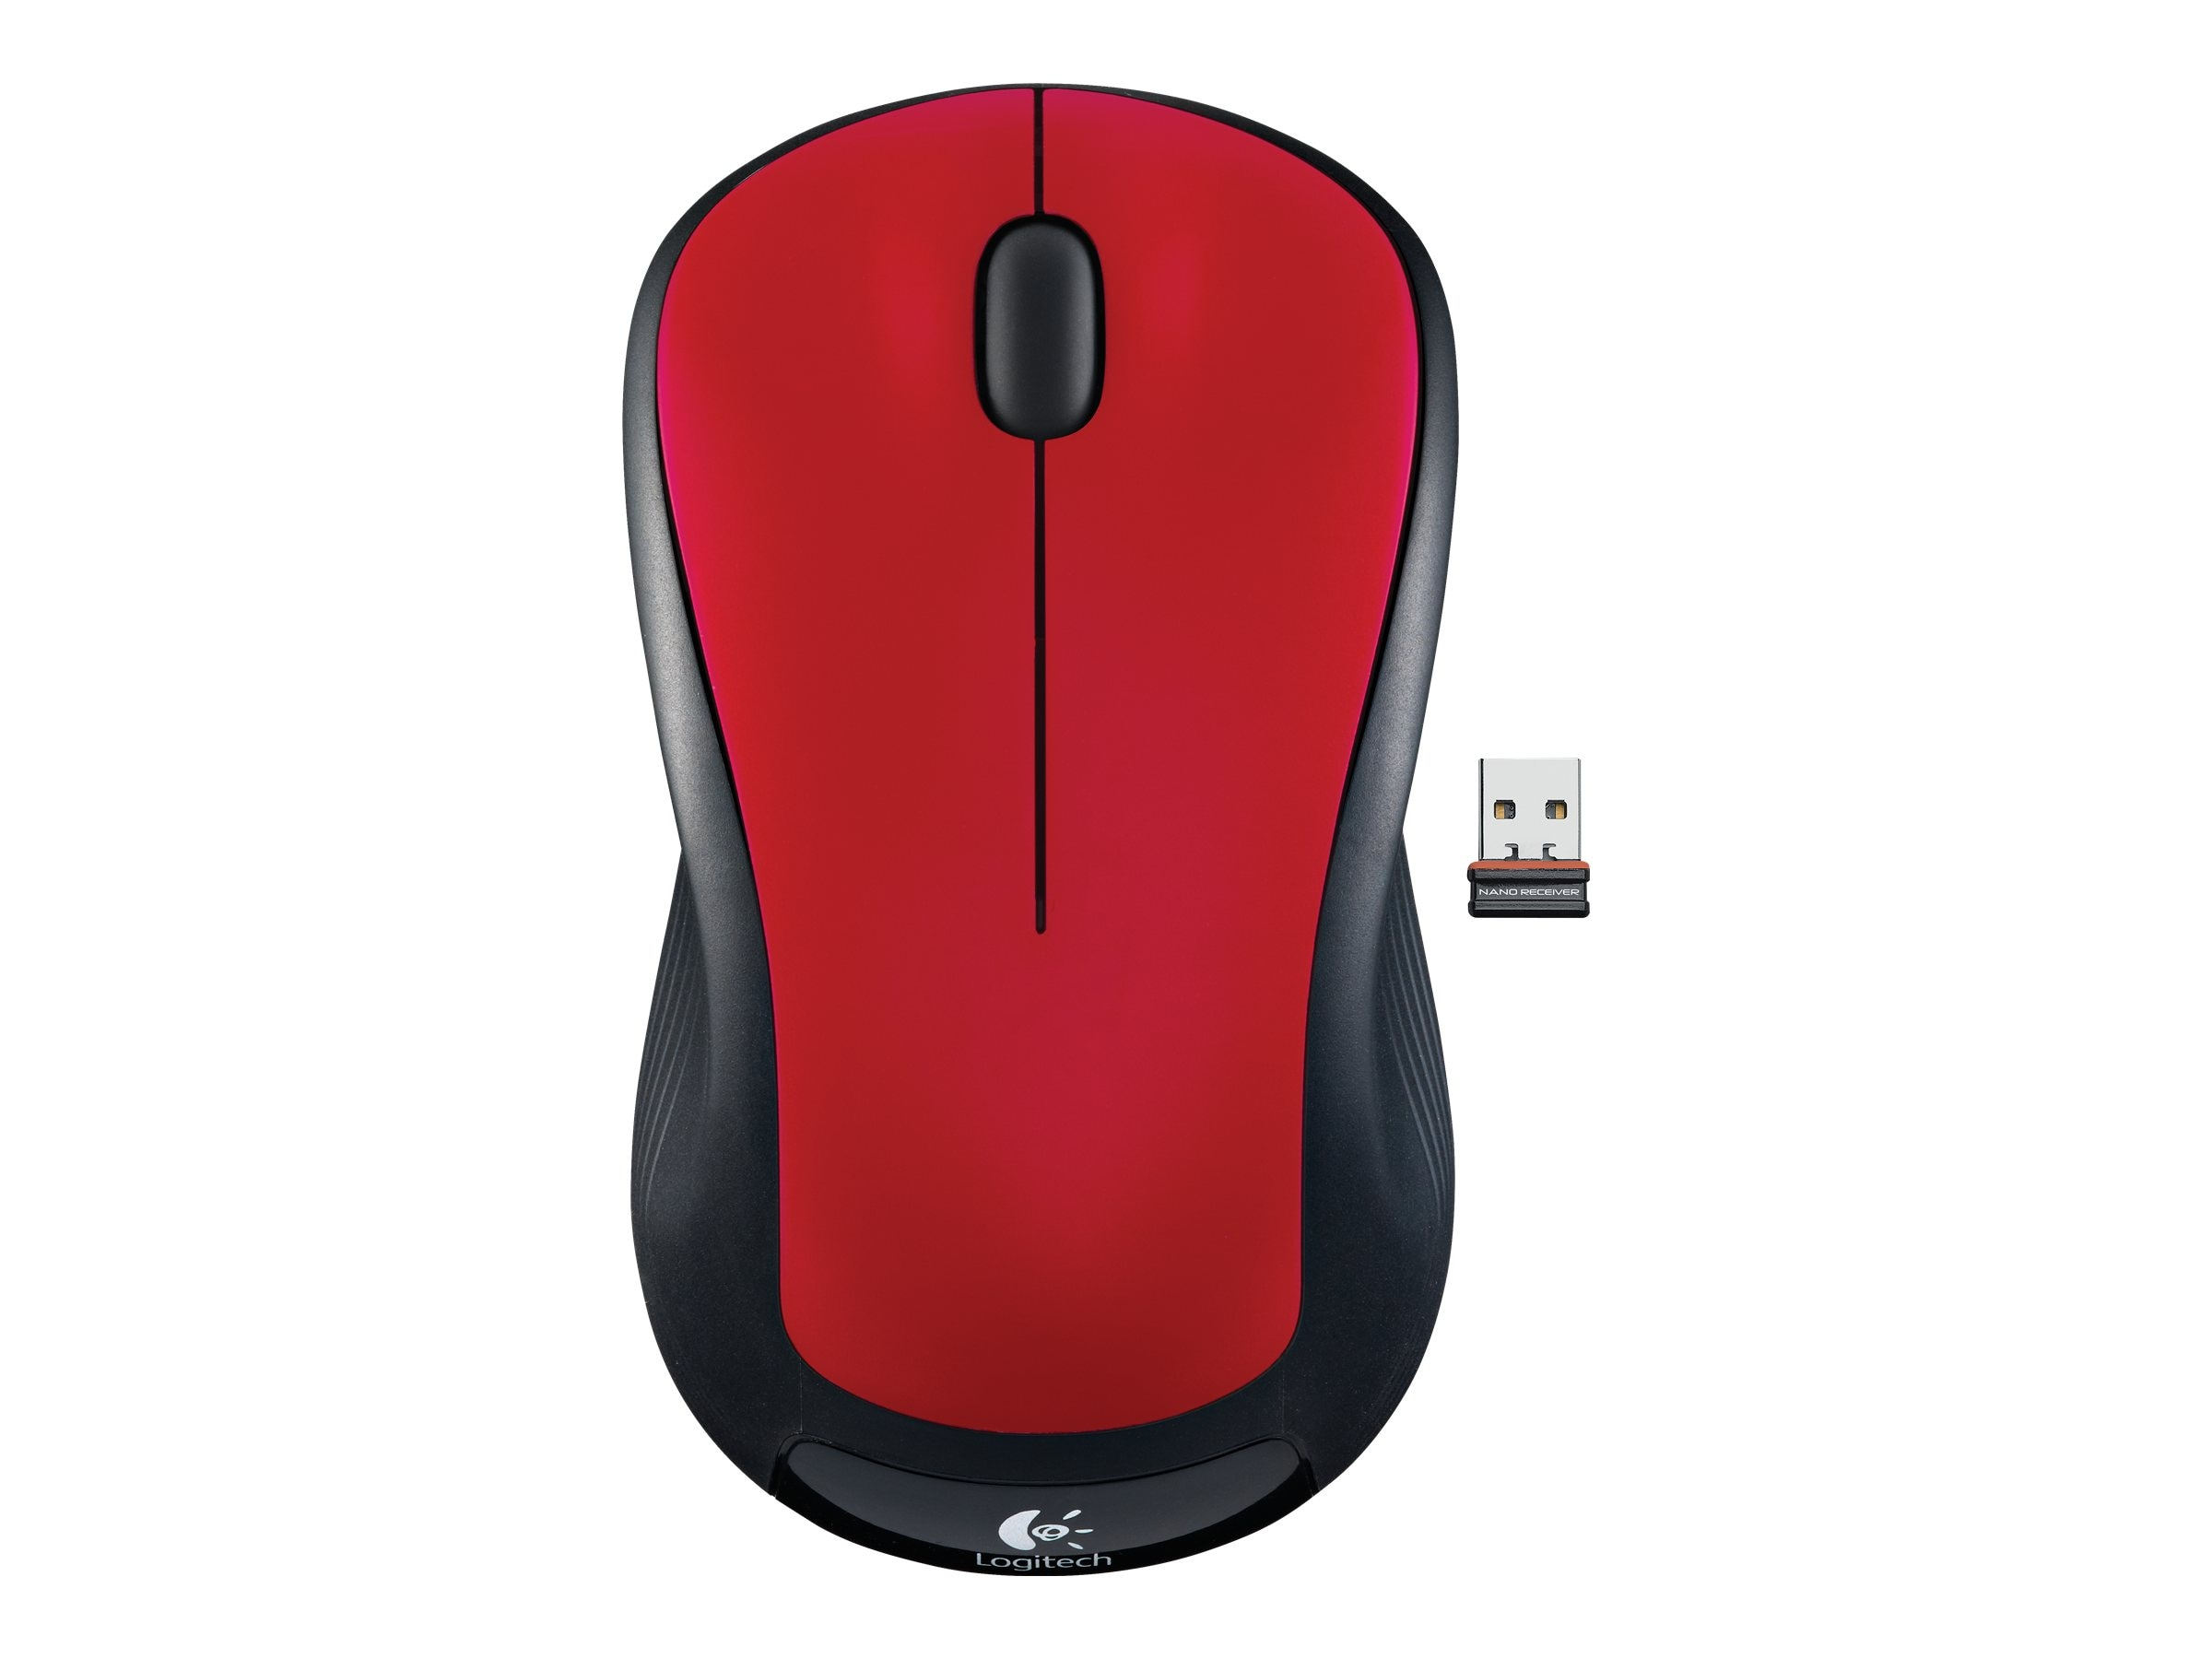 Logitech M310 Wireless Mouse, Flame Red, 910-002486, 12728904, Mice & Cursor Control Devices